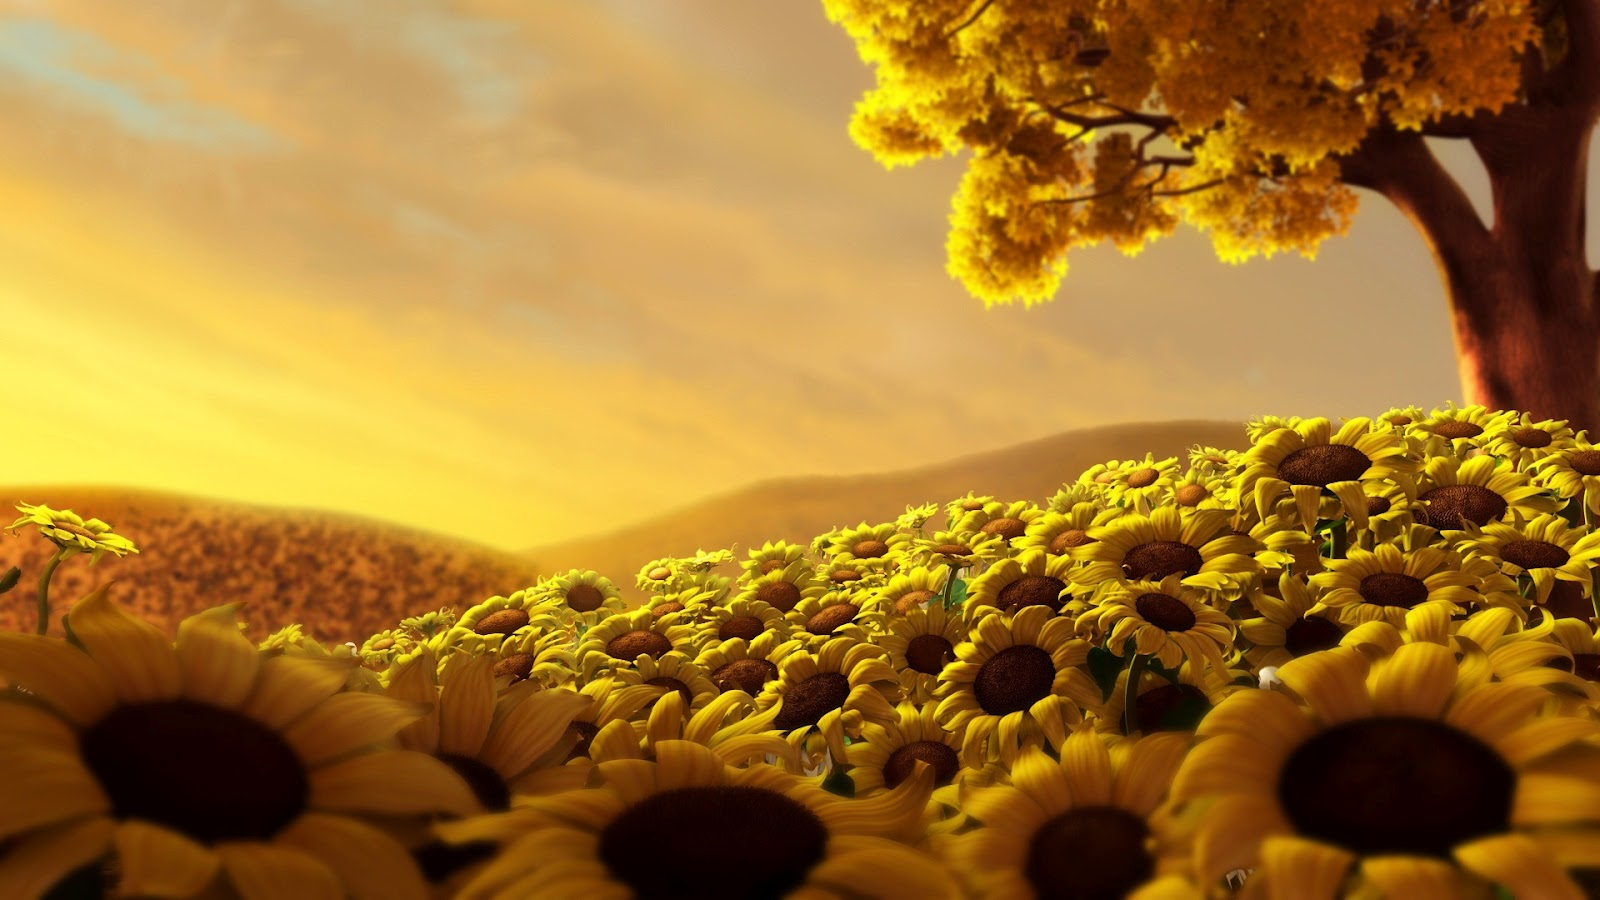 World Of Flowers And HD Wallpapers: HD Superb Desktop